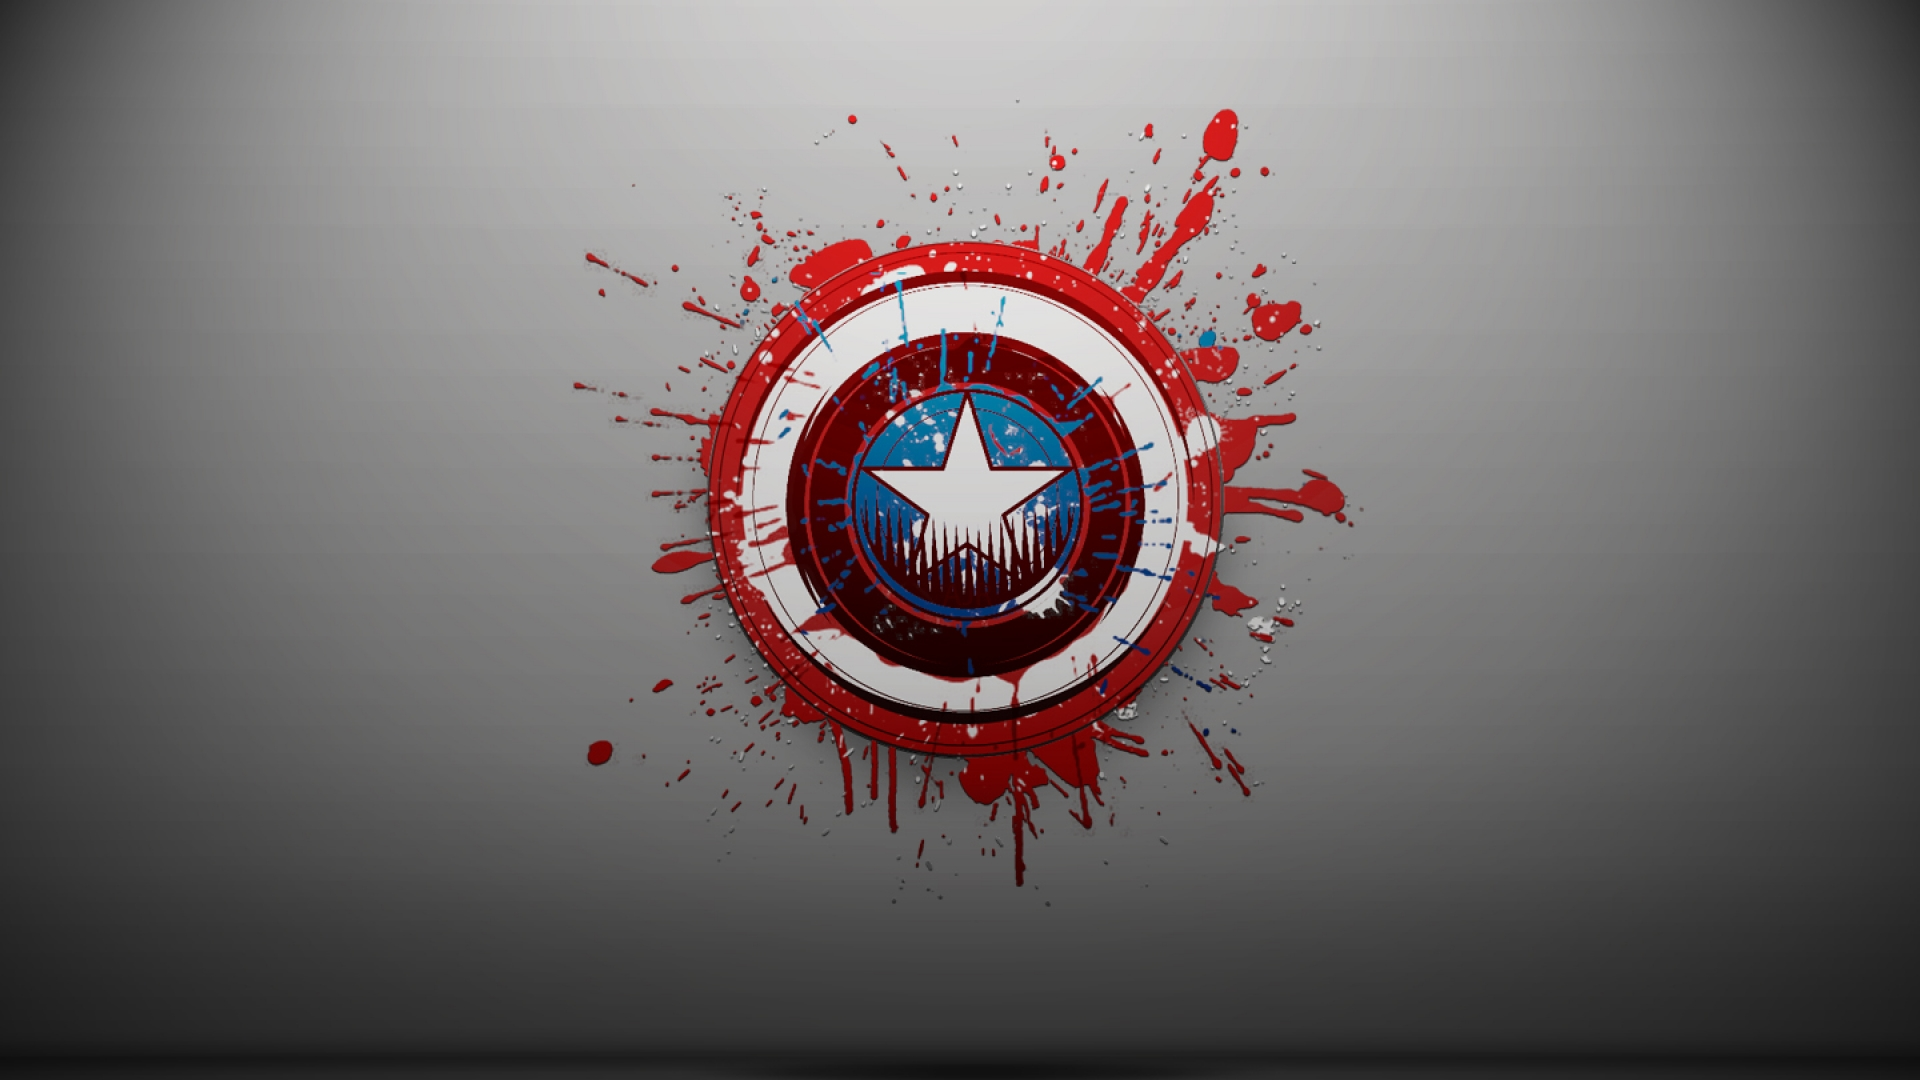 Good Wallpaper High Resolution Captain America - captain-america-wallpaper-17856-18316-hd-wallpapers  Image_77226.jpg